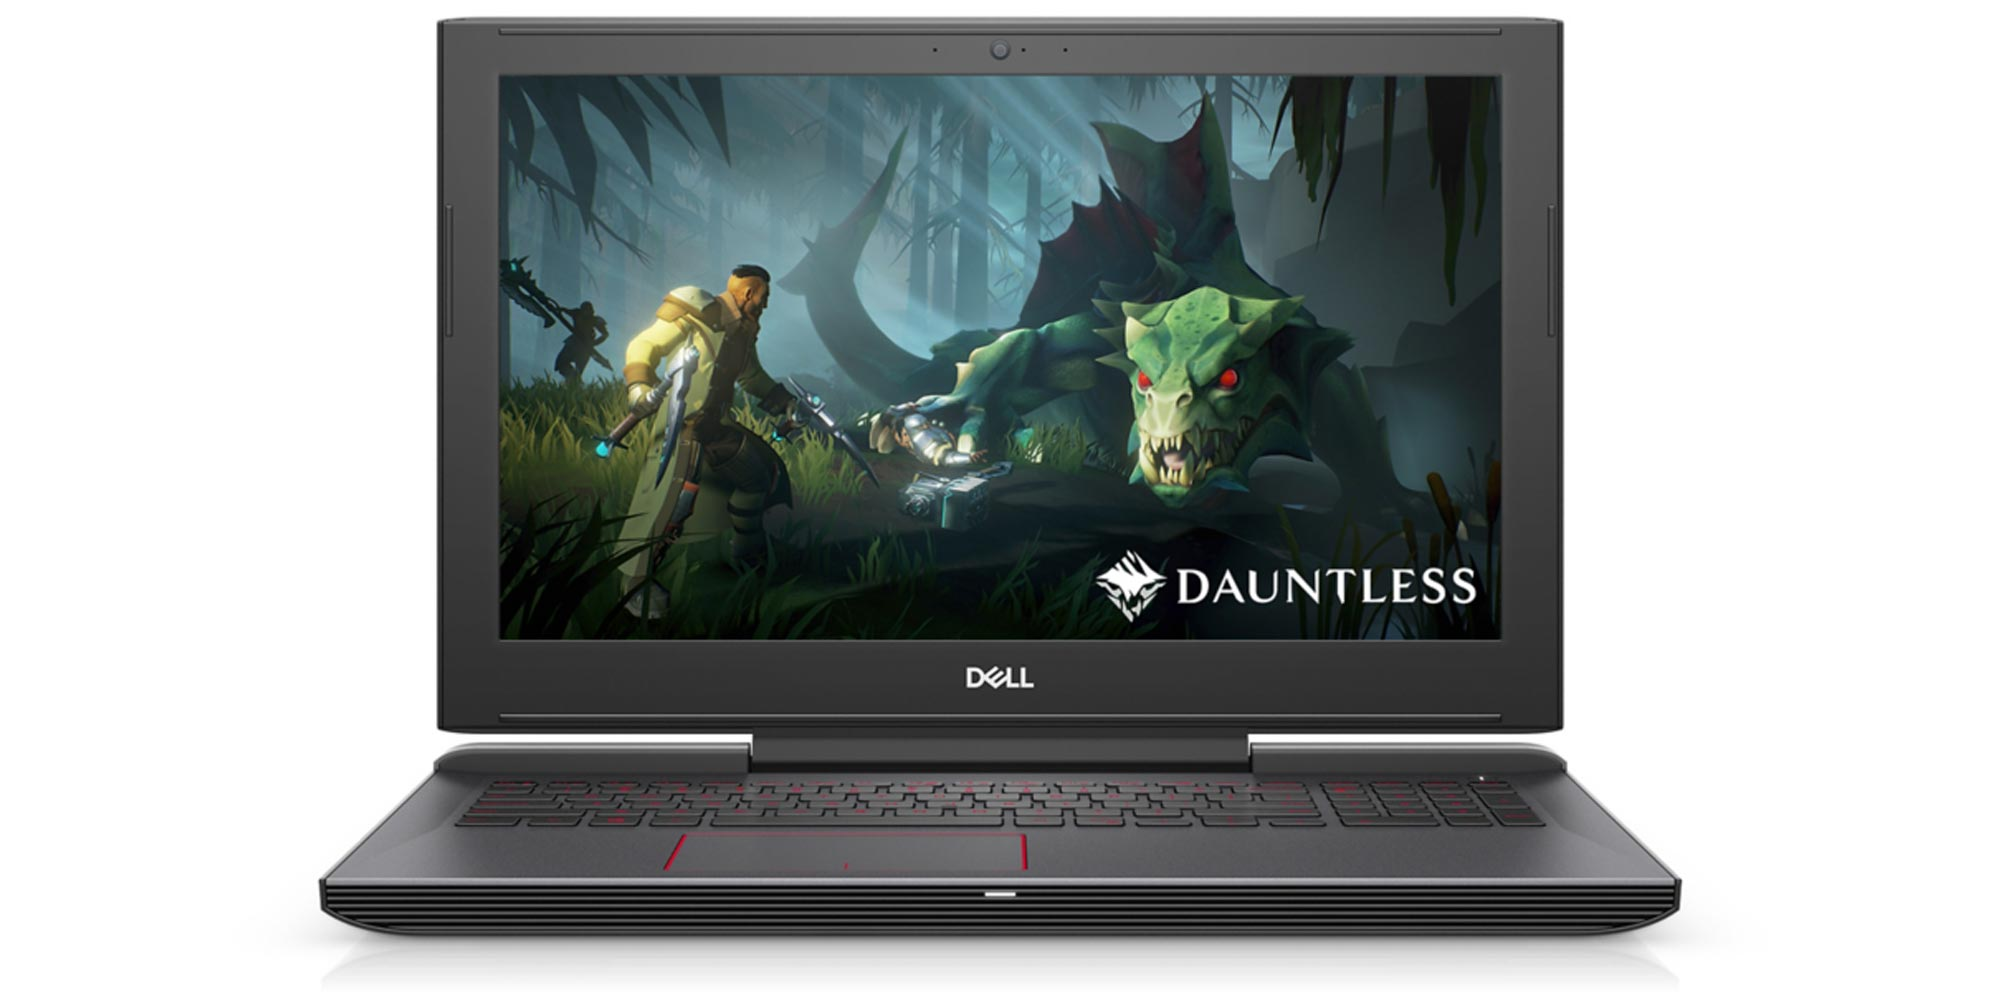 Dell's G5 gaming laptop offers a GTX 1060 & i5 for $799, more from $599